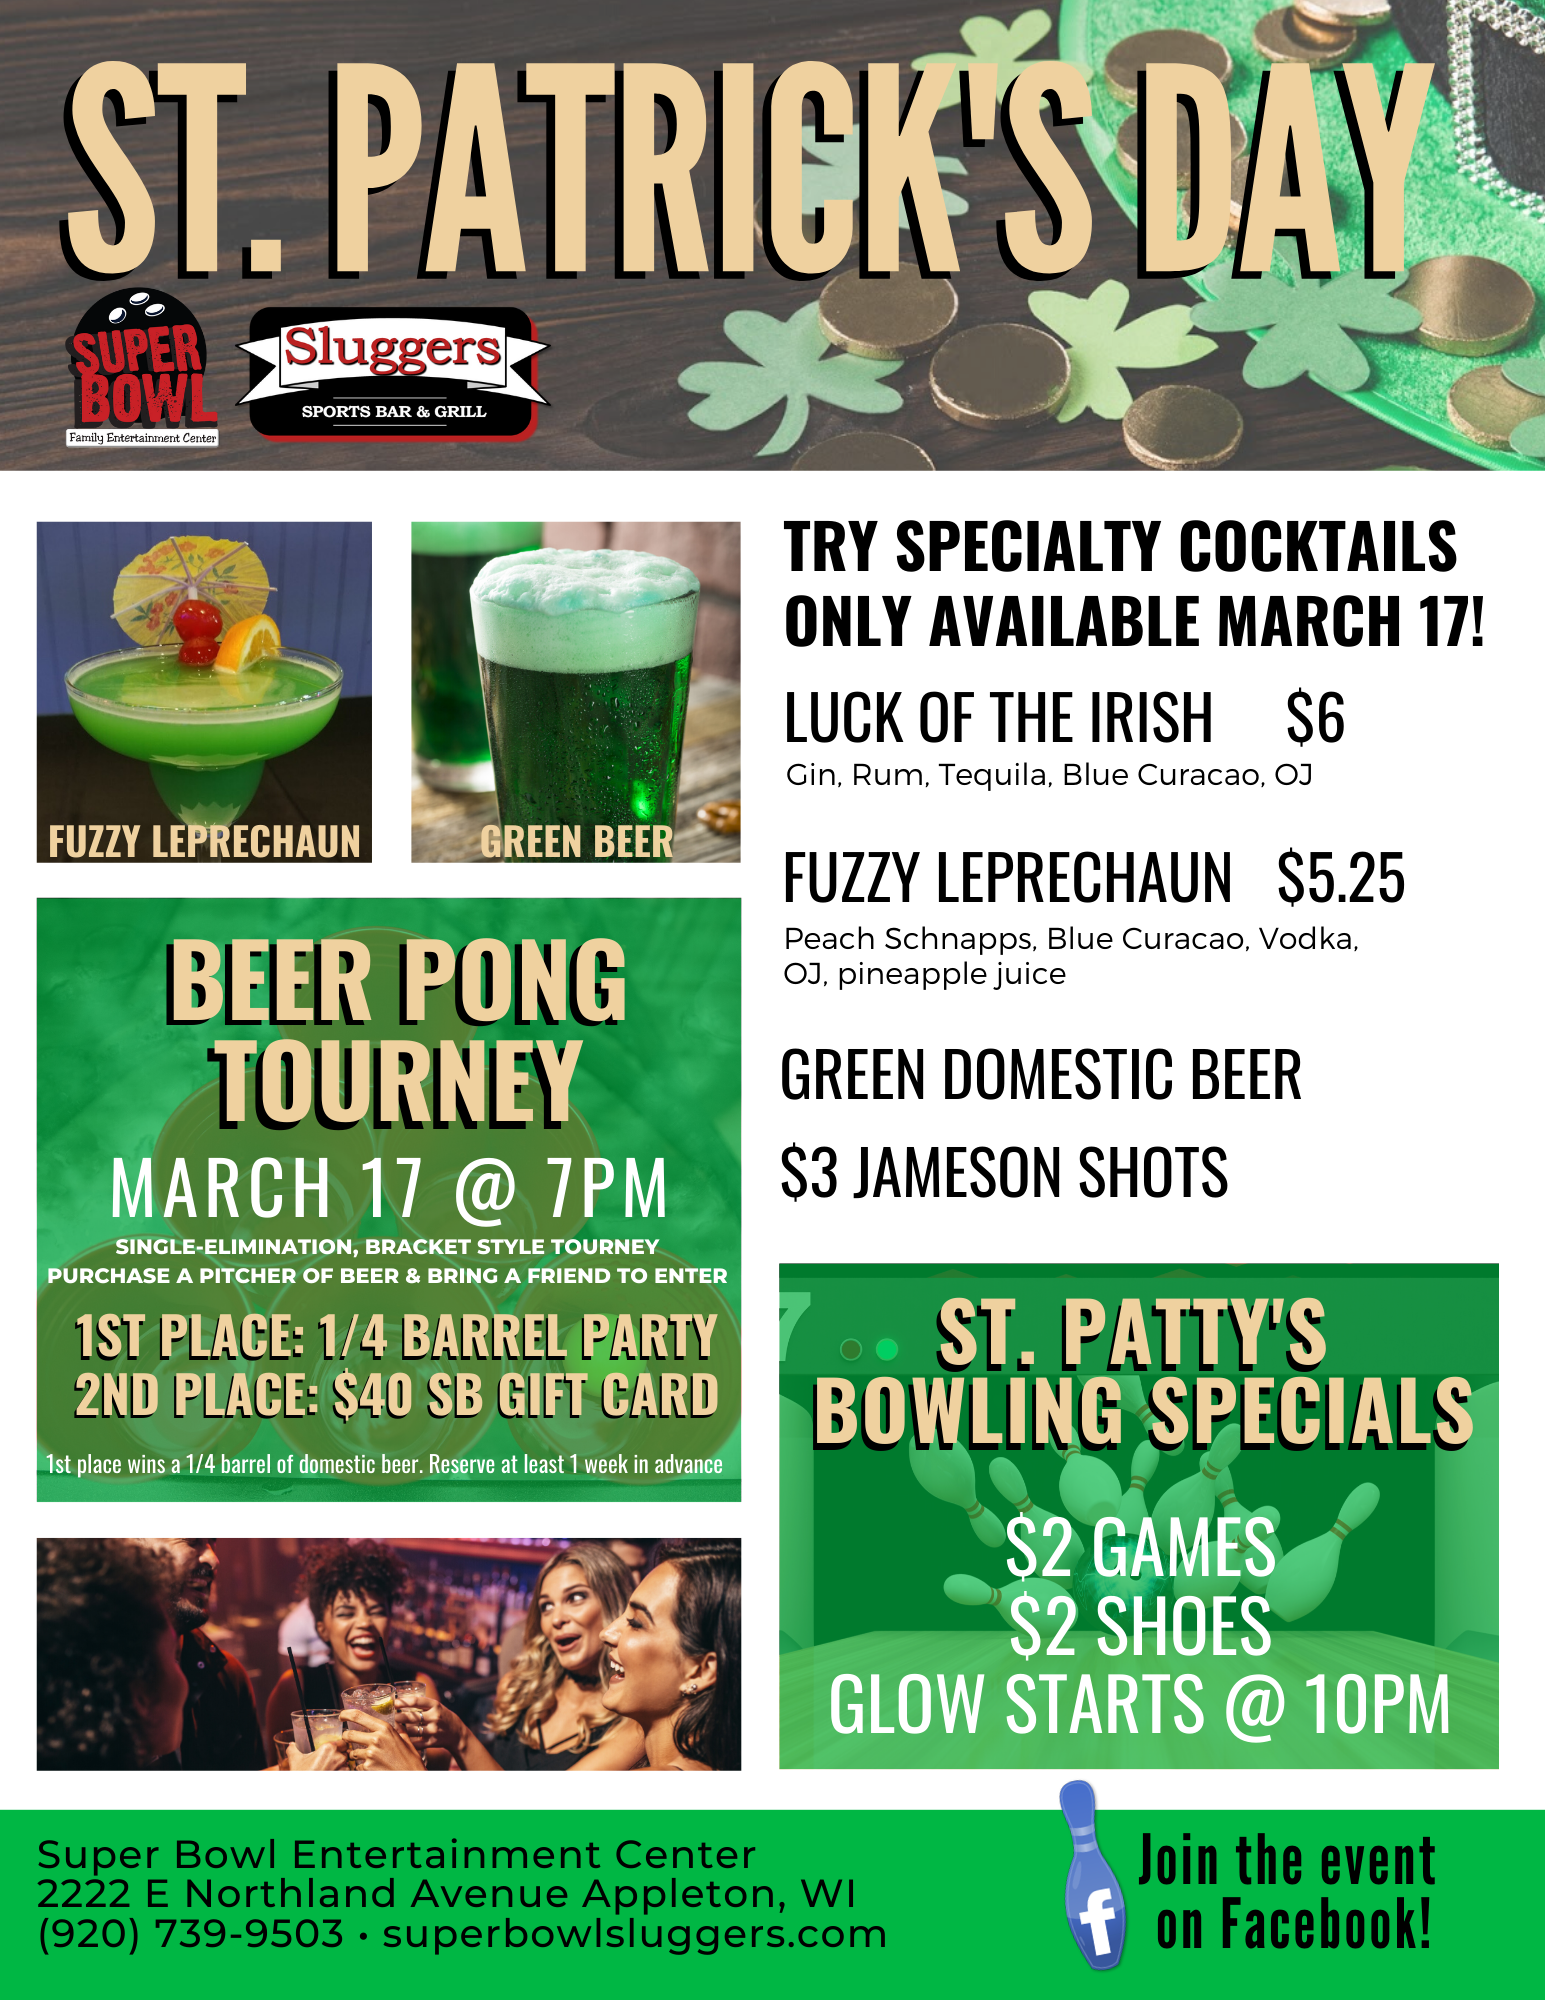 st. patrick's entertainment options for all | st. patrick's day flyer 2020 | beer pong tourney | drink specials | sluggers sports bar & grill | inside super bowl | appleton, wi